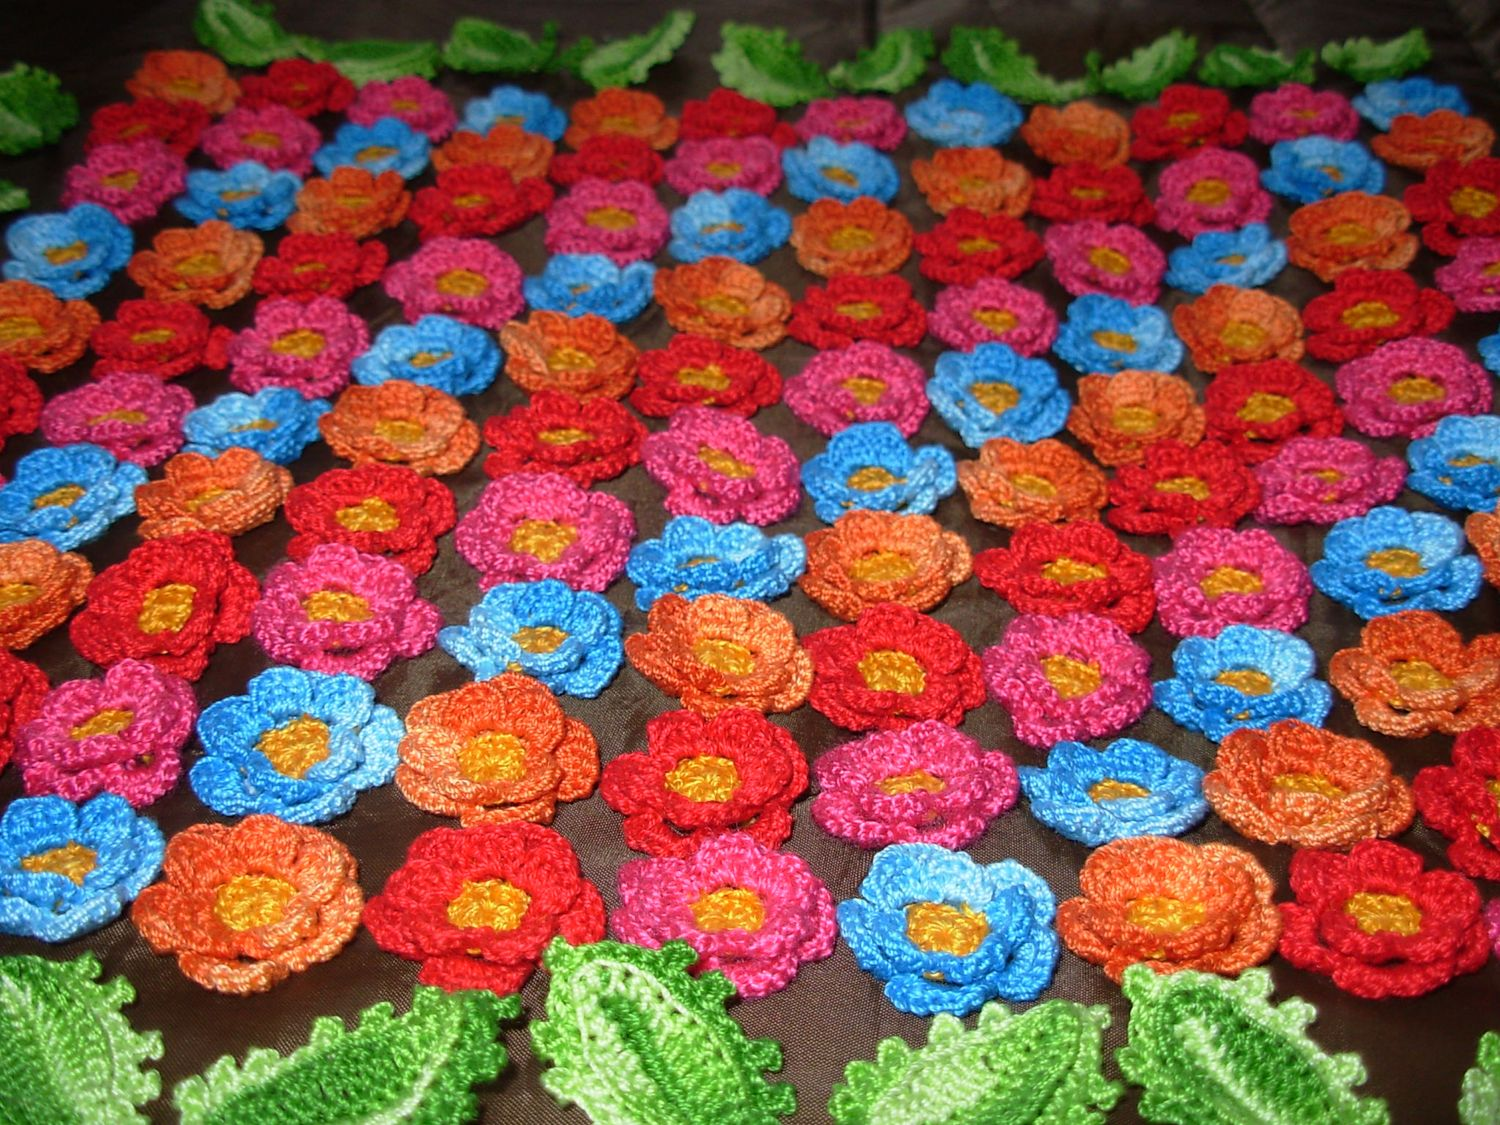 Crocheting Projects : Crochet Flowers: Ideas for using crochet flowers in projects